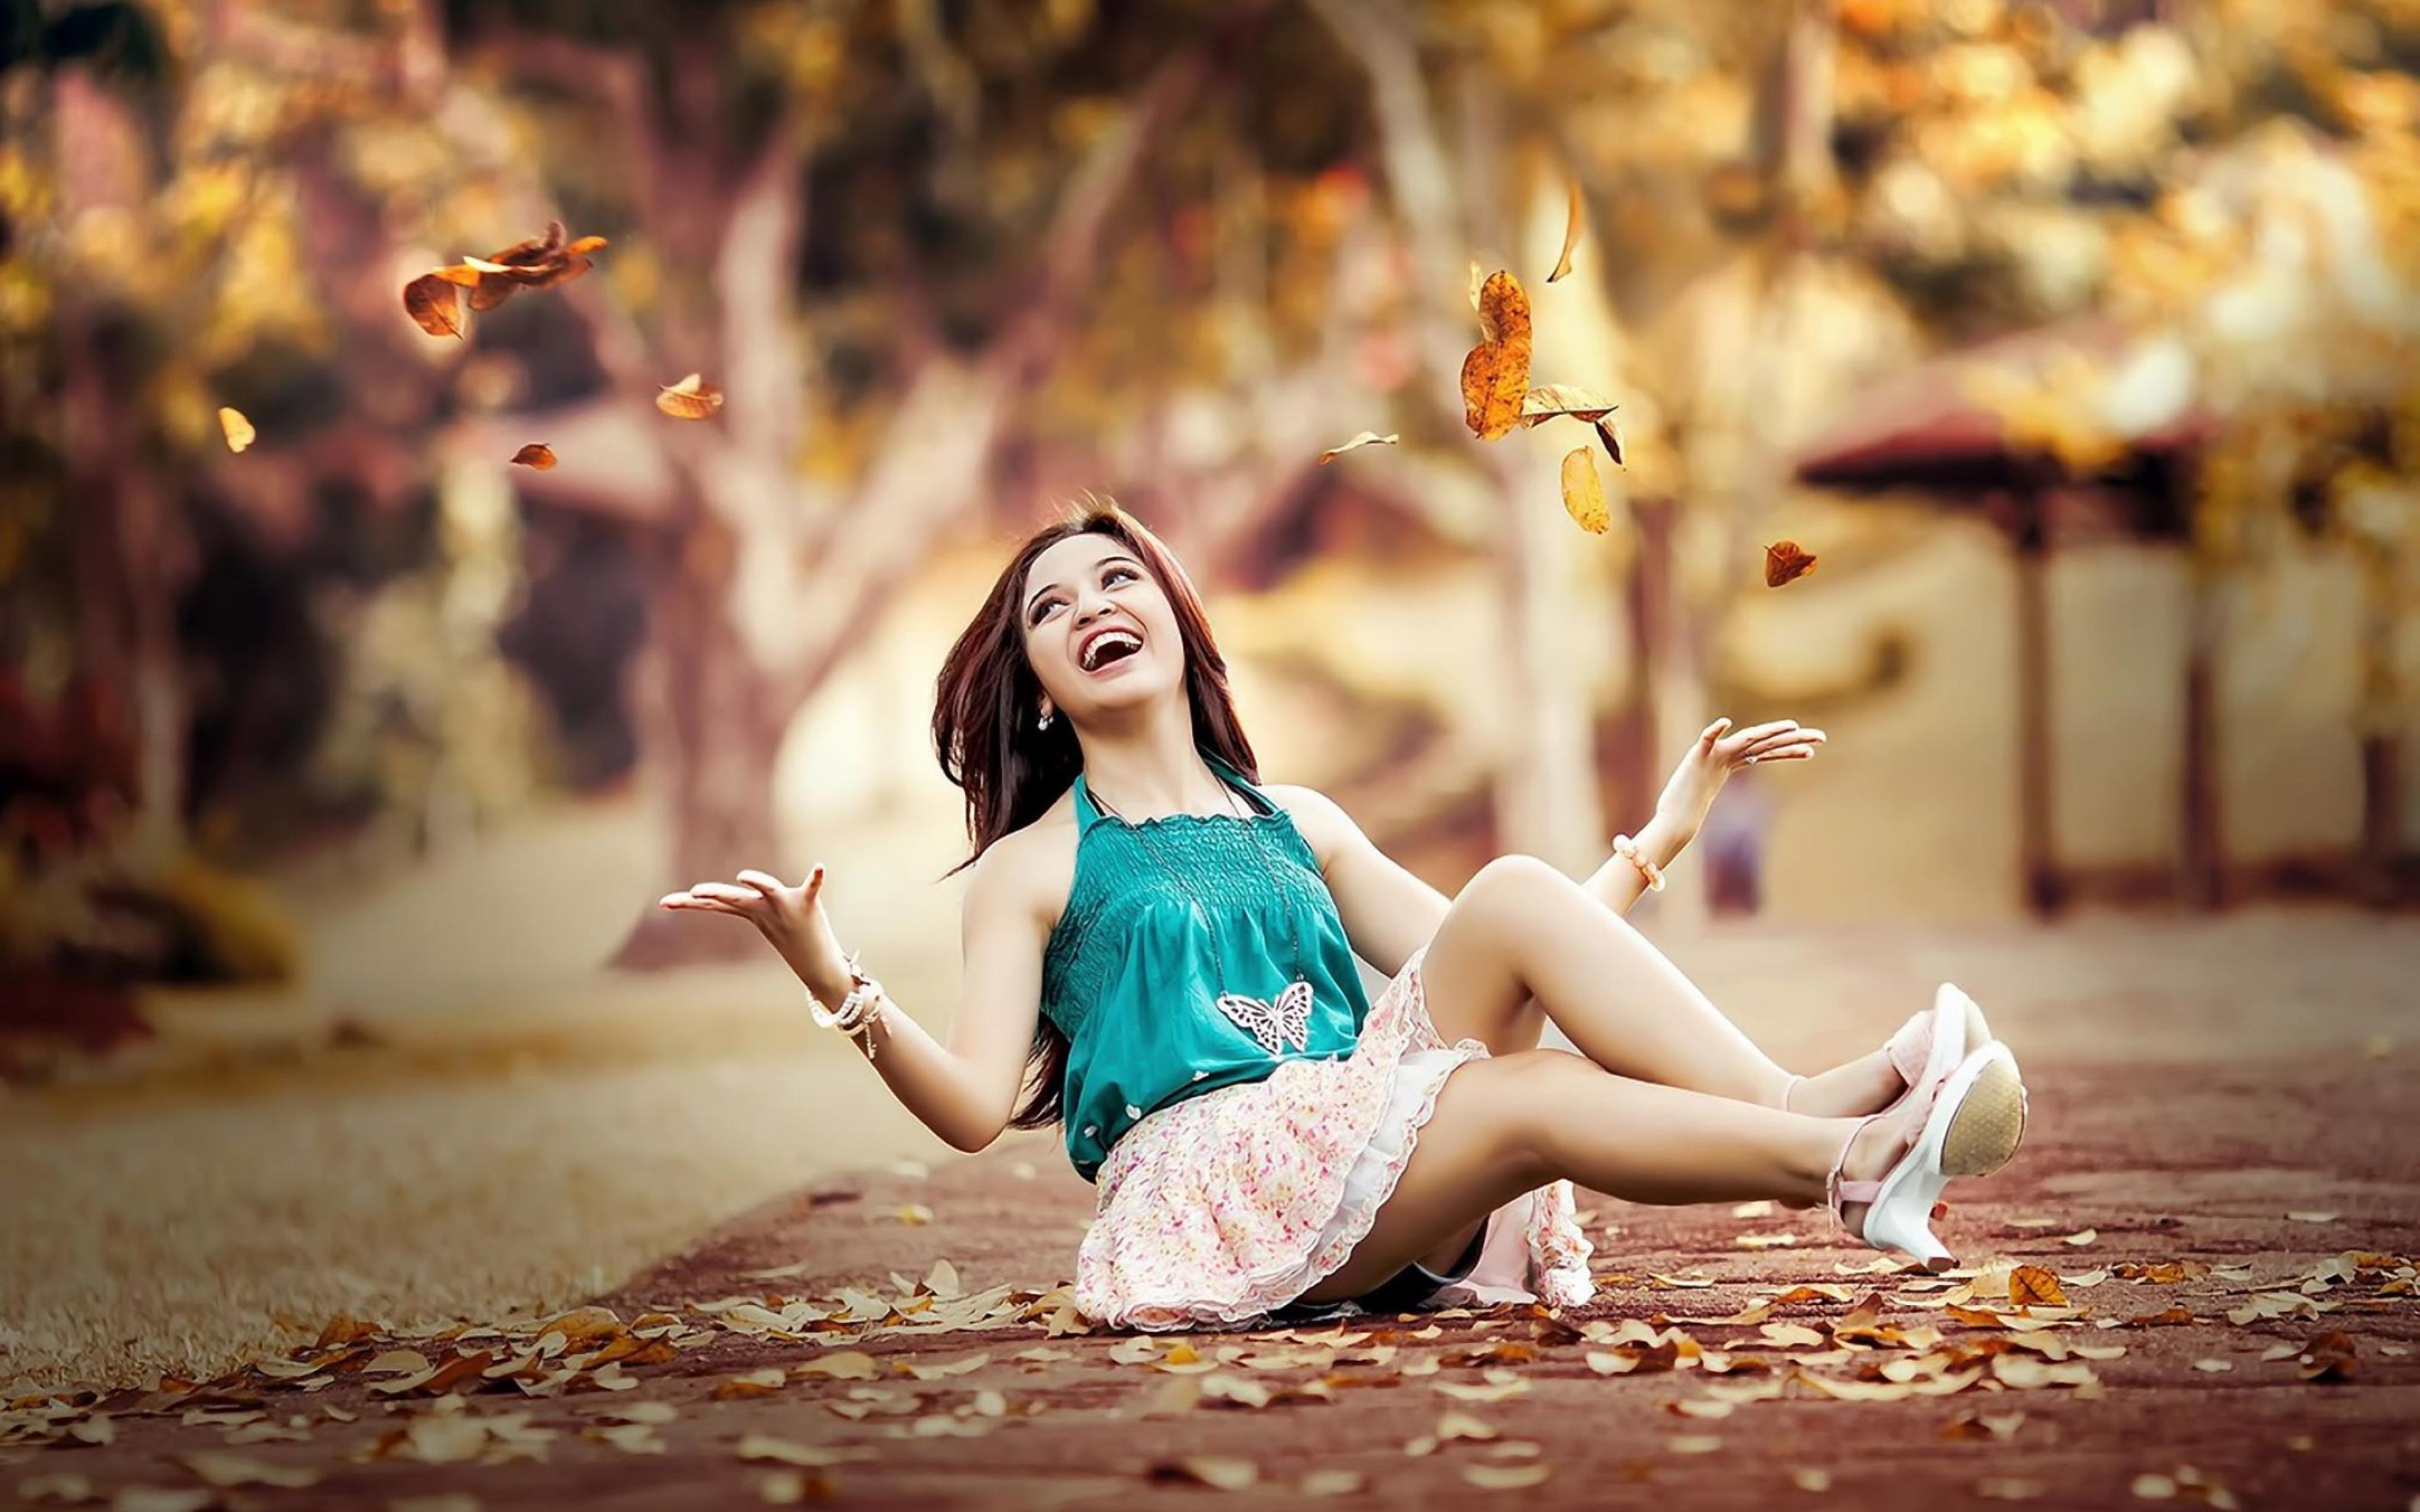 Download free HD Beauty Girl Pavement Leaves Autumn Wallpaper, image